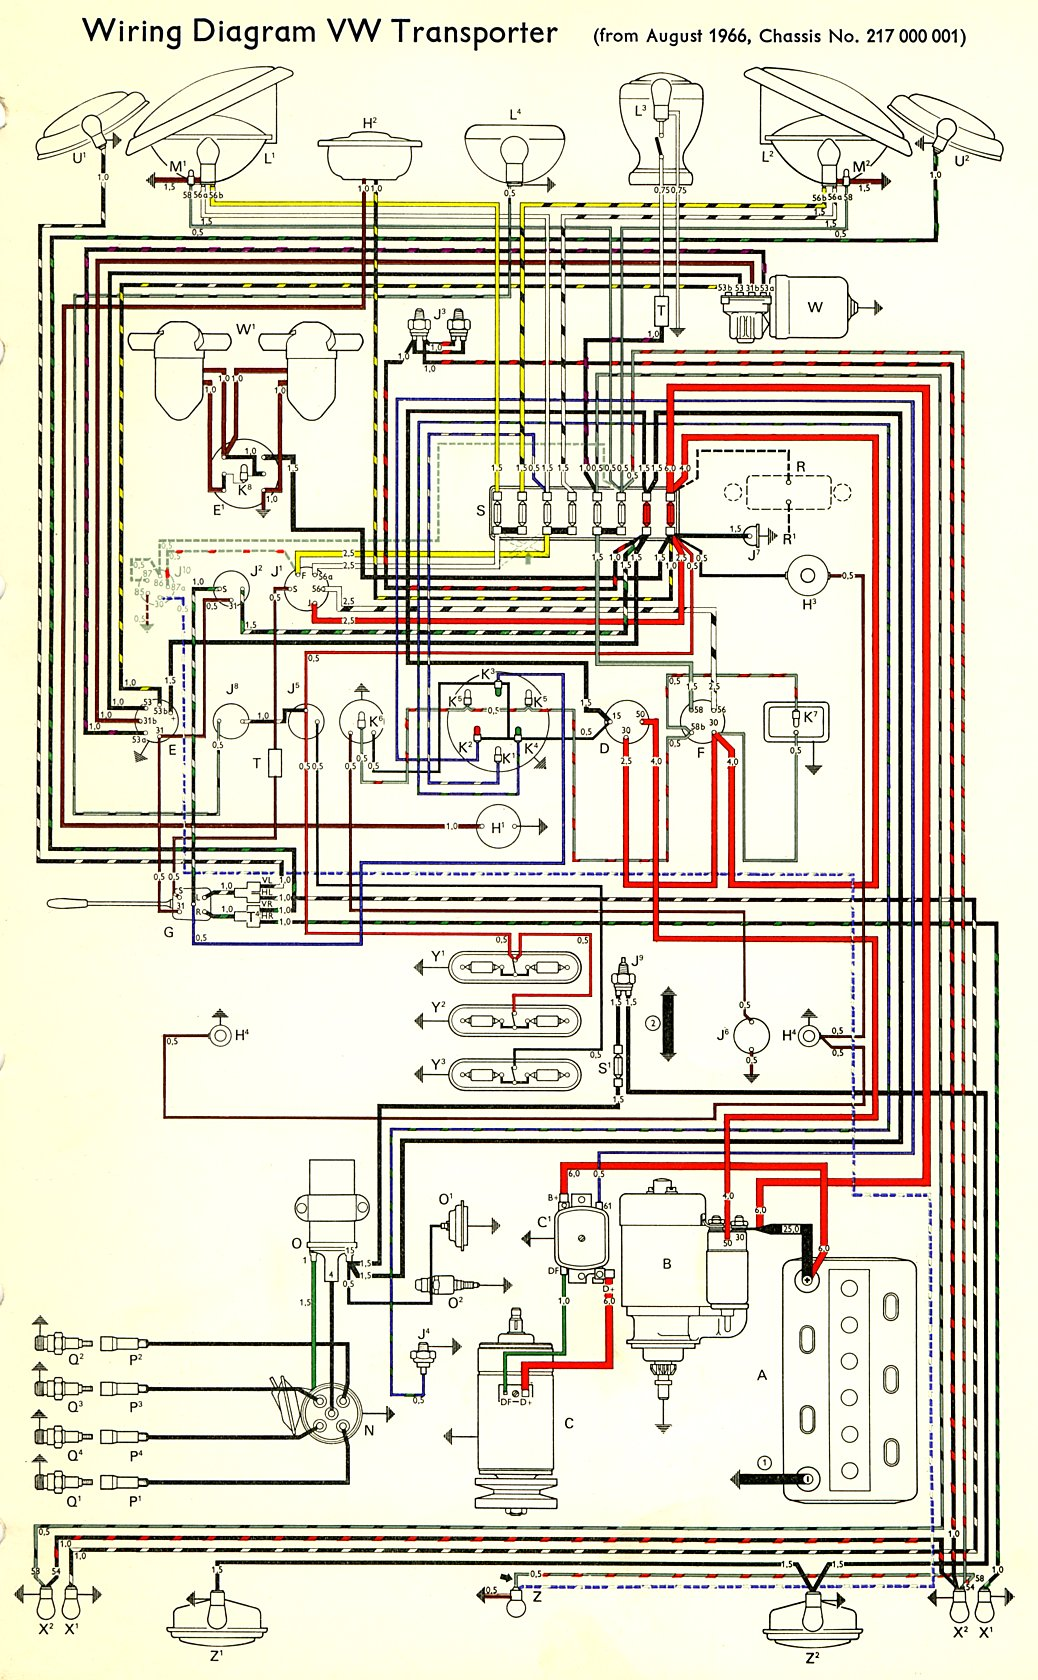 bus_67 vw bus wiring diagram 1965 vw bus wiring diagram \u2022 wiring diagrams 1965 vw bus wiring harness at cos-gaming.co